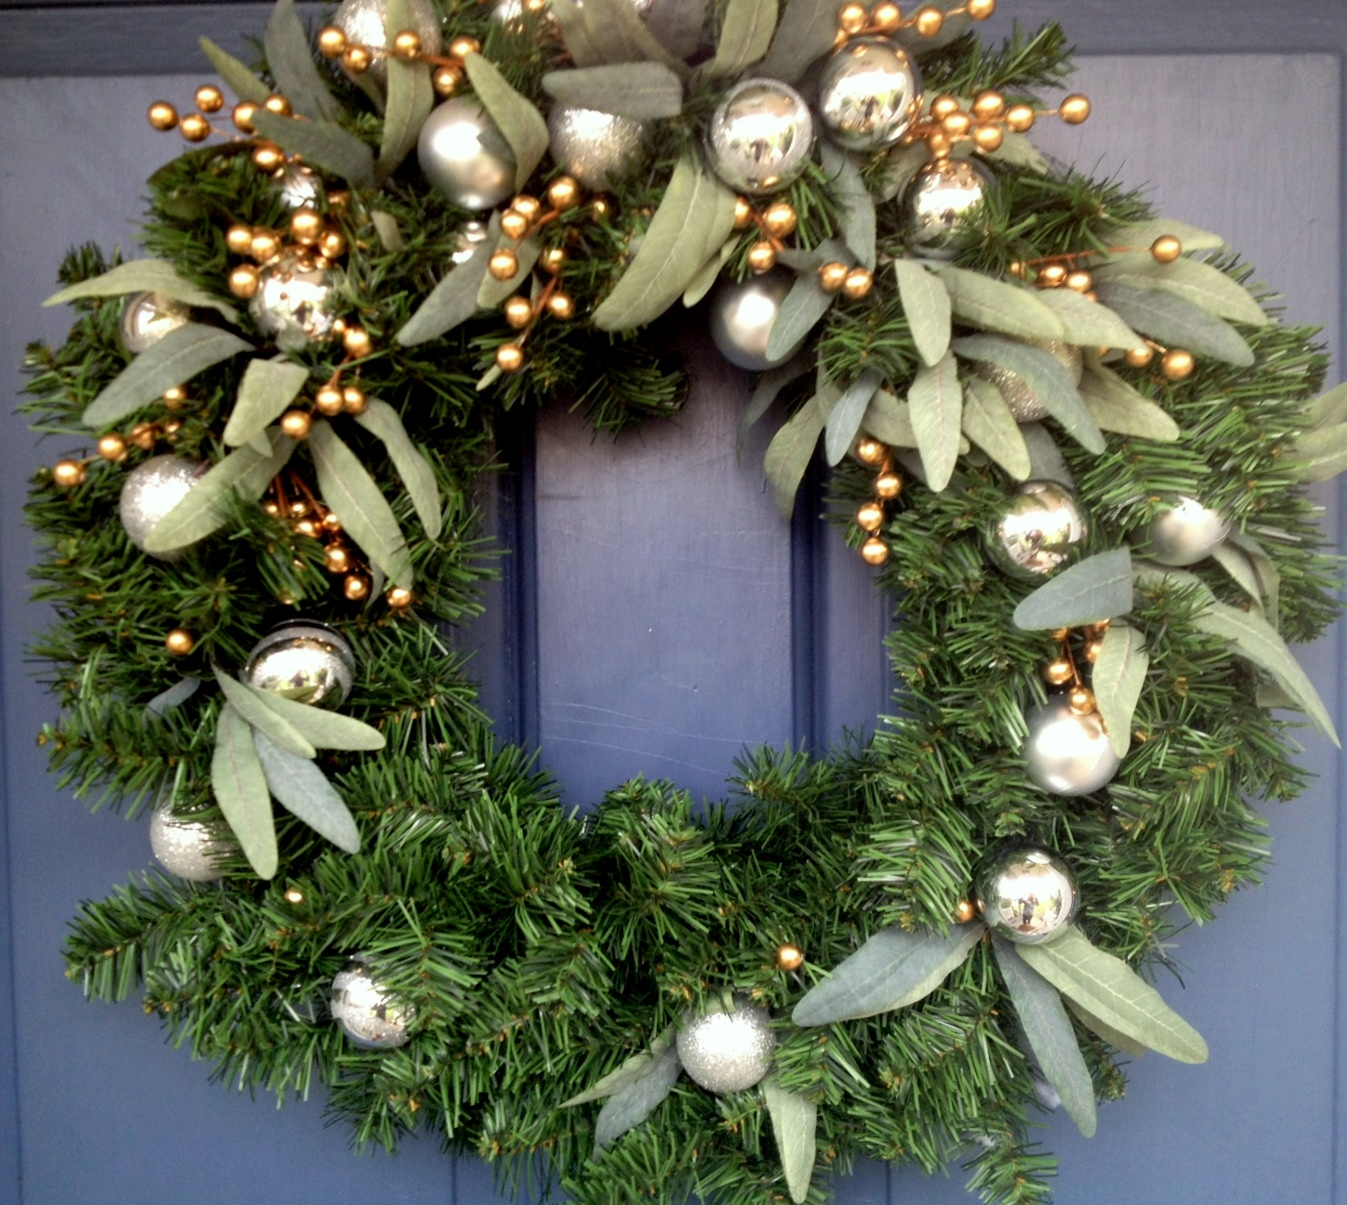 Front door christmas wreaths - 78 Best Images About Kerst Krans 2 On Pinterest Kerst Christmas Ornament Wreath And Natal